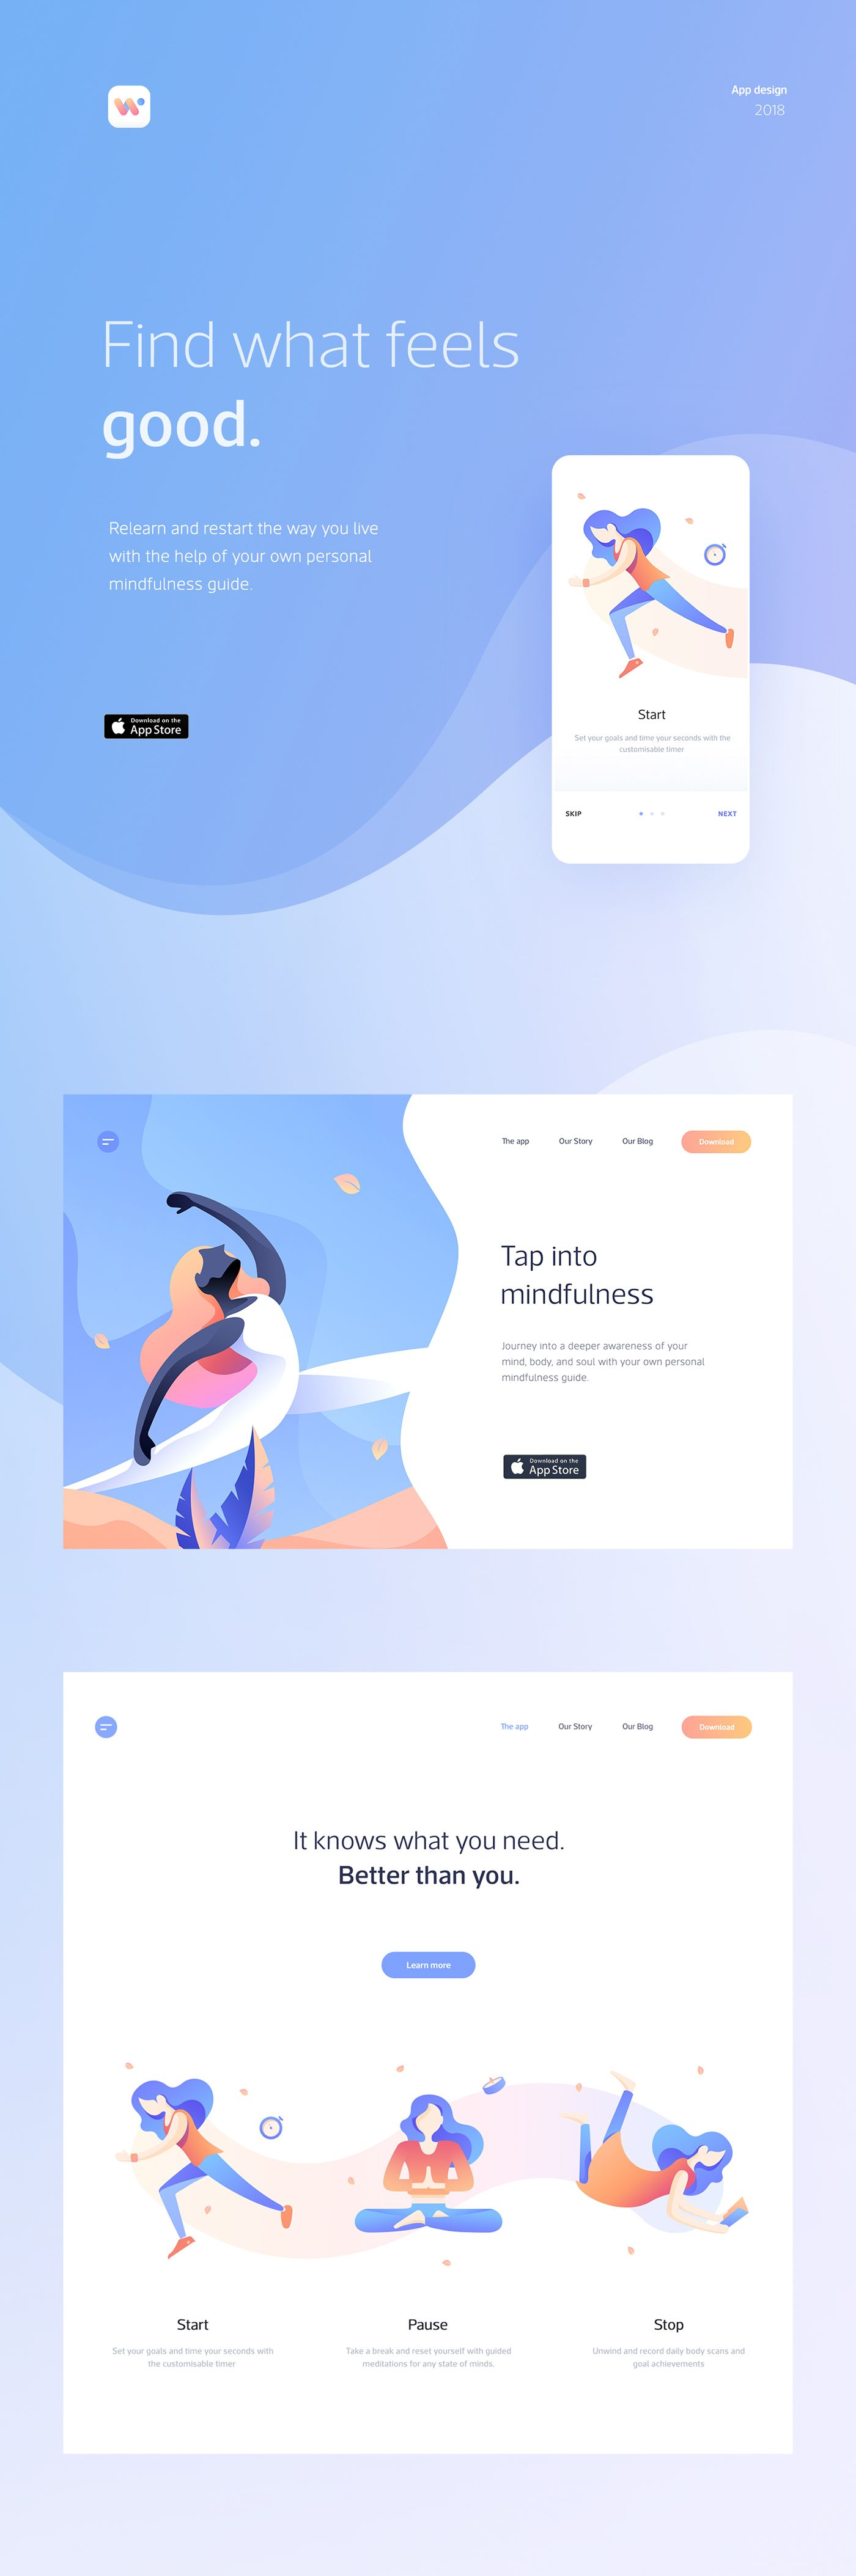 UI/UX & web design for a mobile app which helps users lead a life of mindfulness.